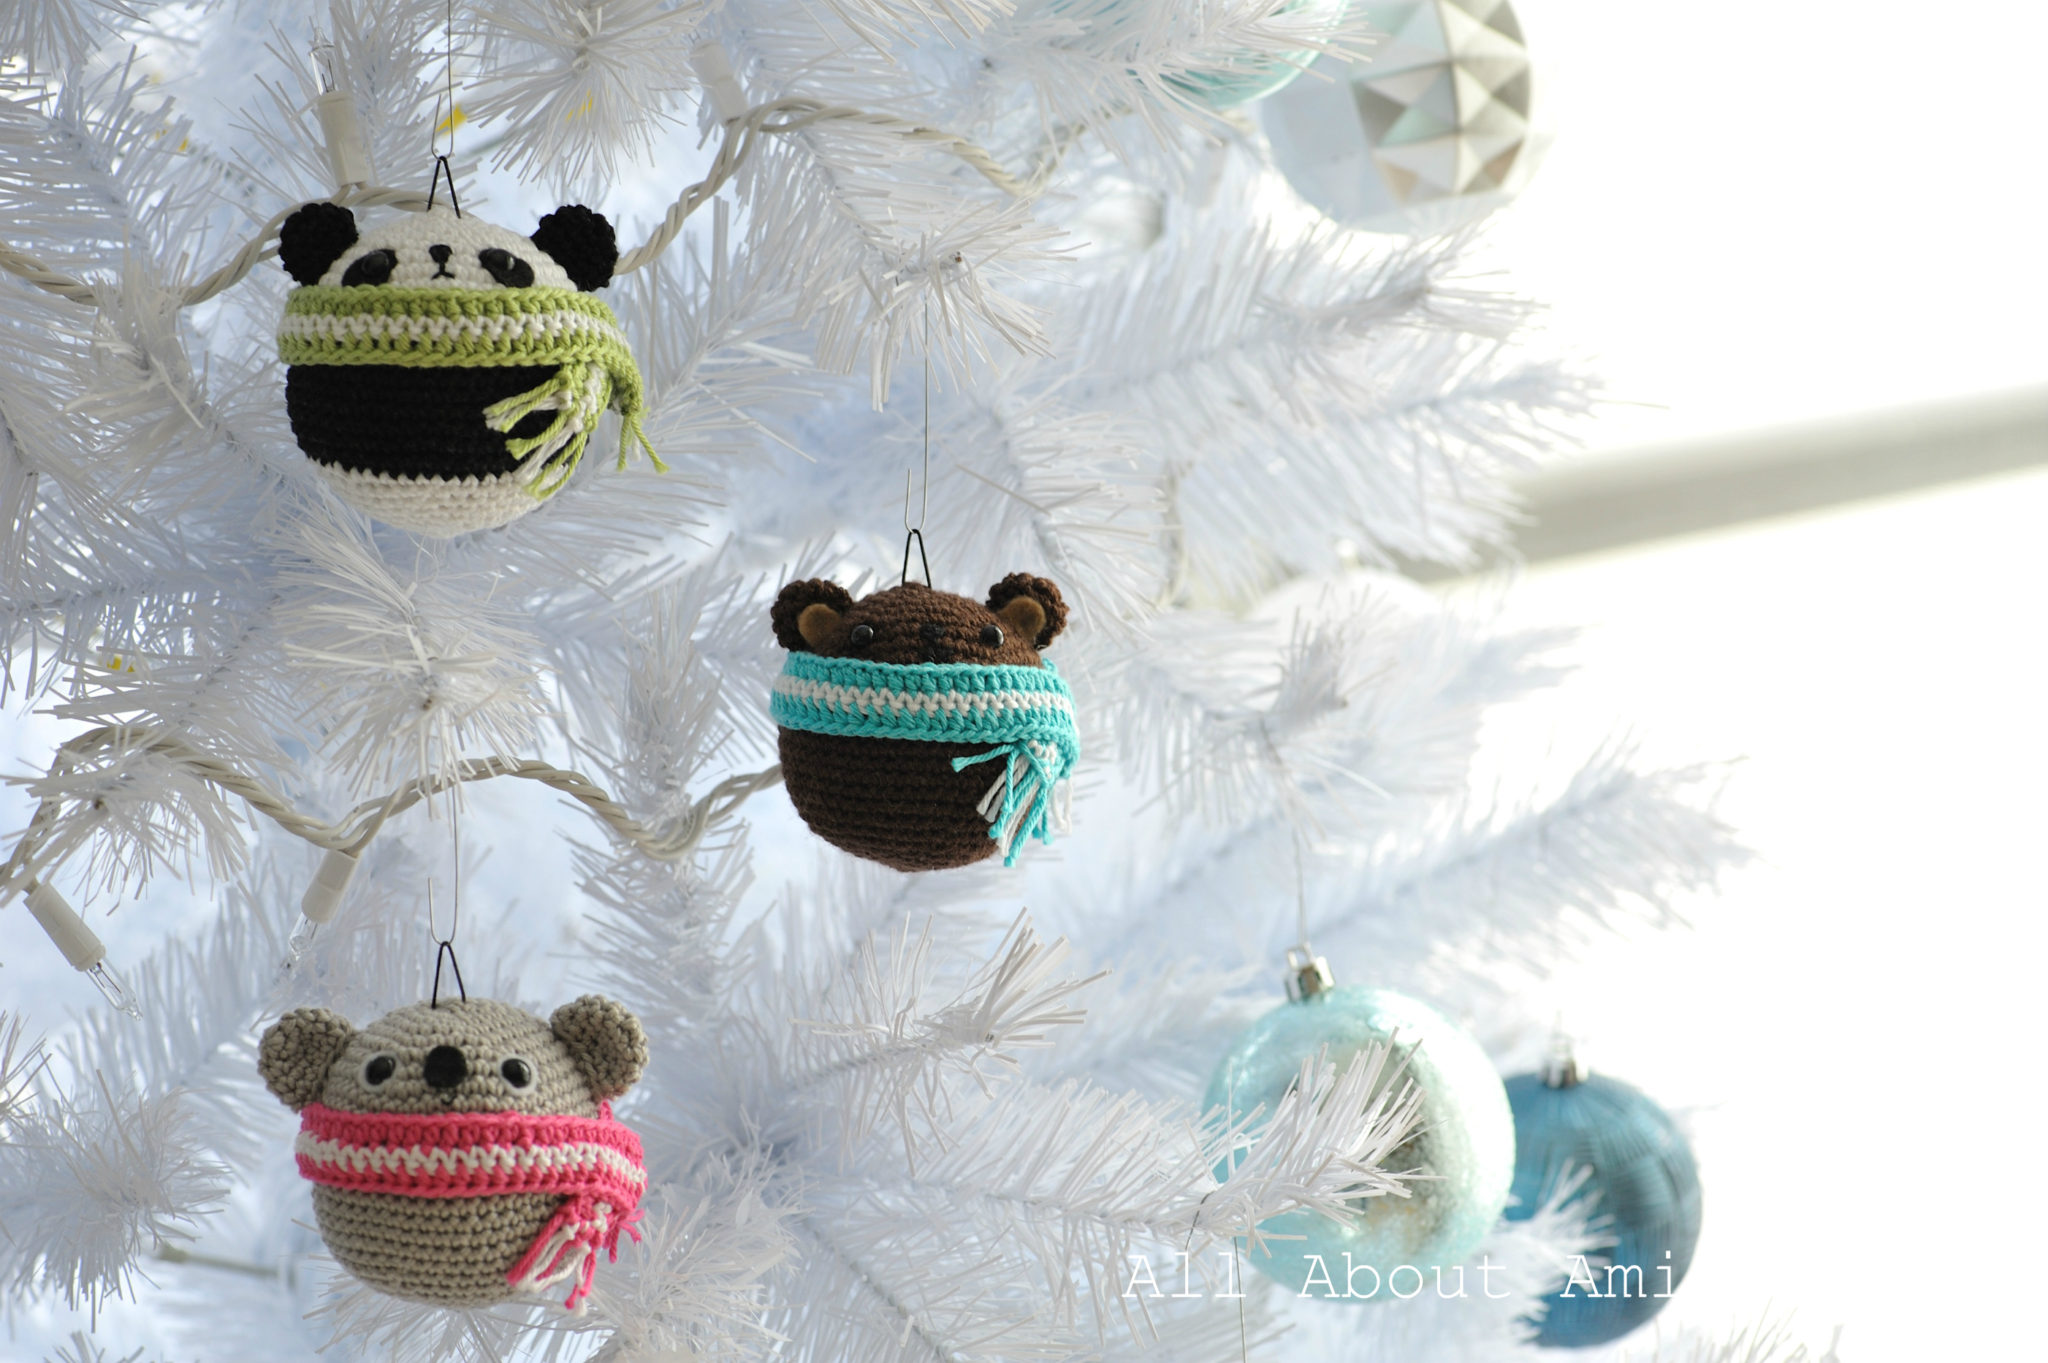 Amigurumi Teddy Ornaments - All About Ami